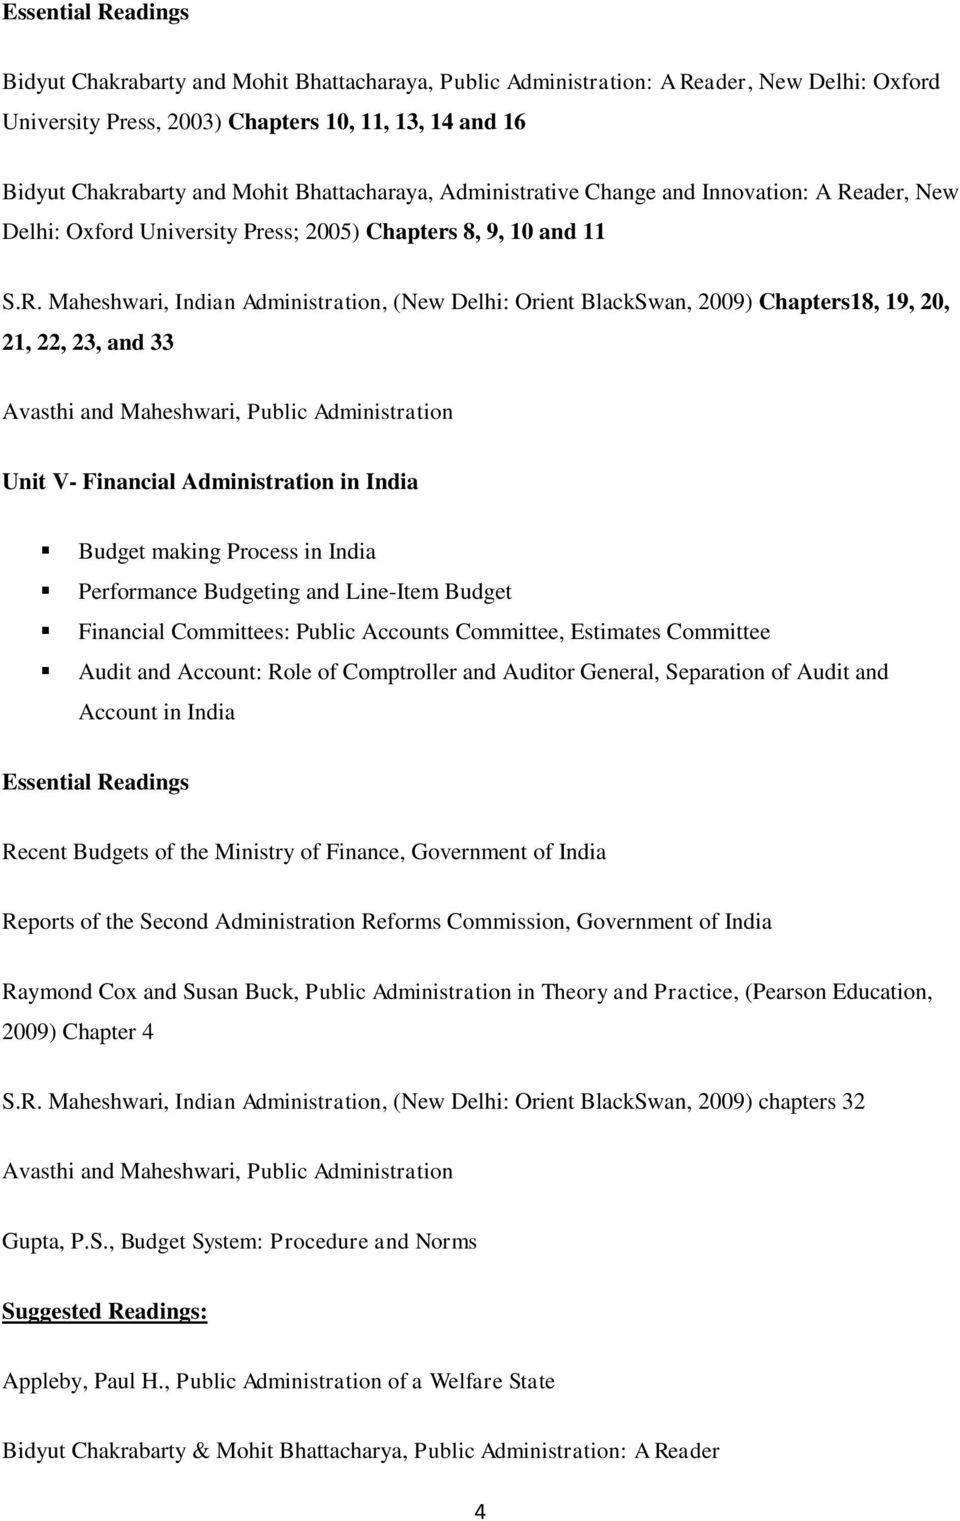 ader, New Delhi: Oxford University Press; 2005) Chapters 8, 9, 10 and 11 S.R.